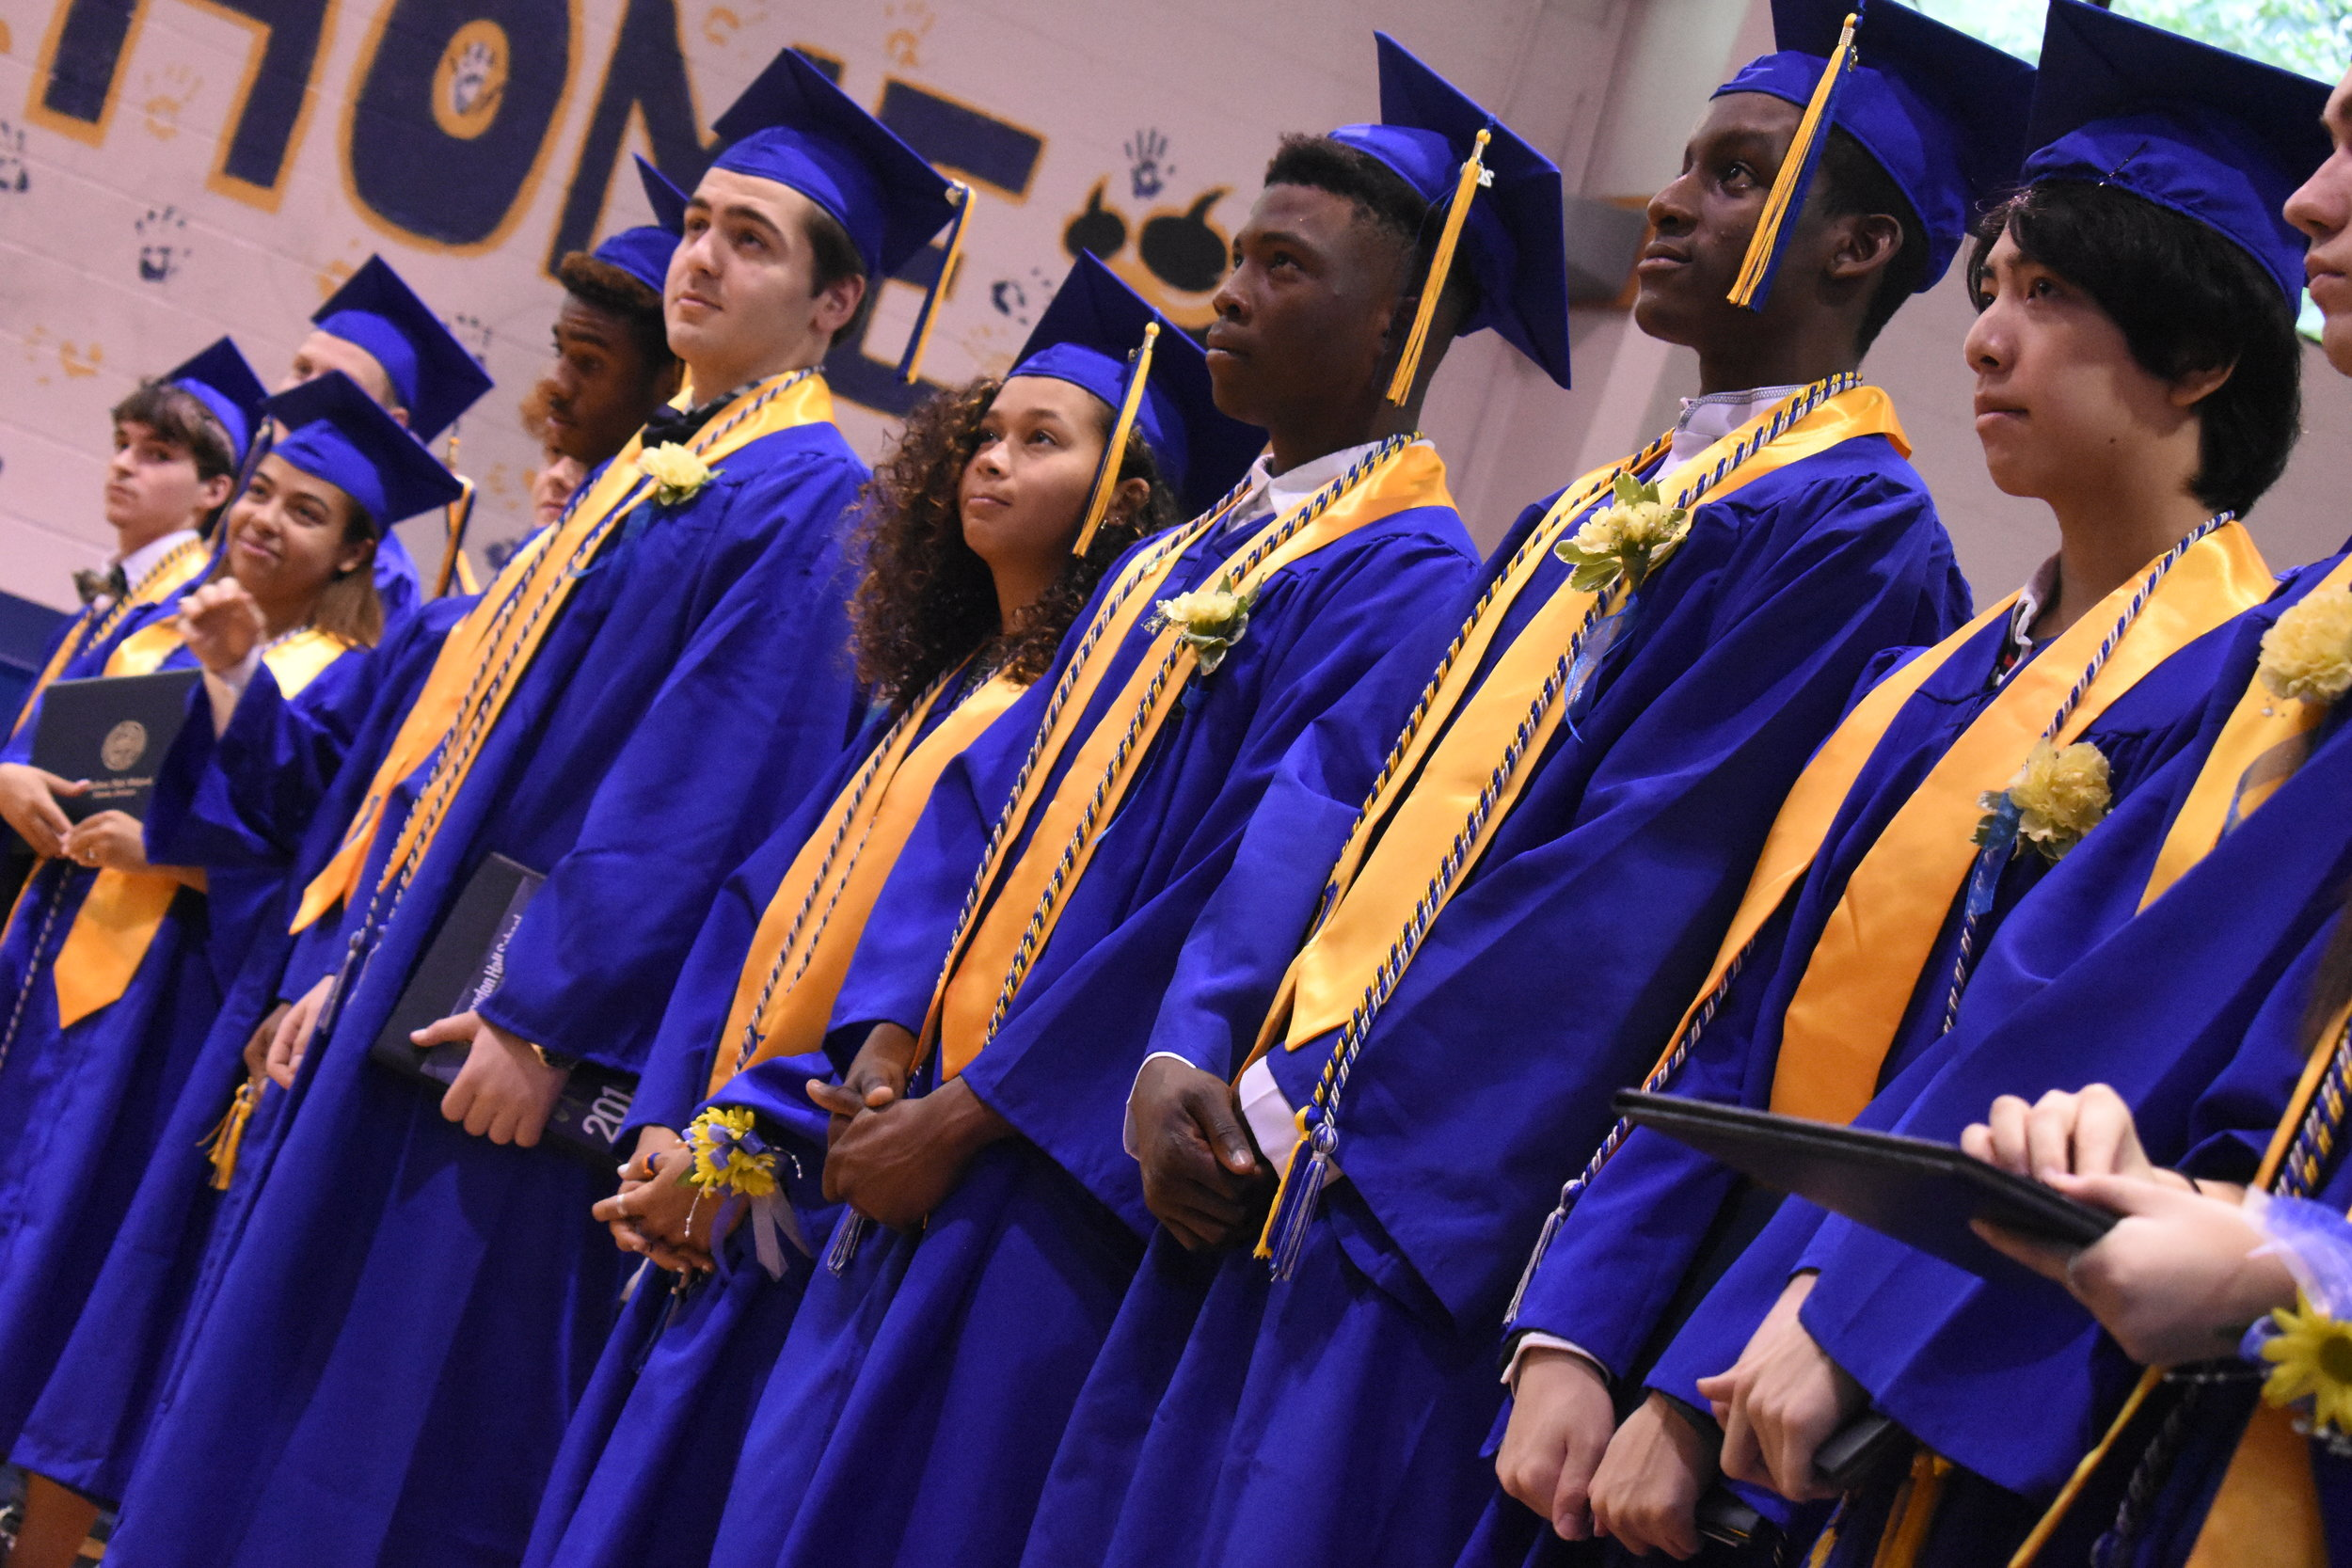 Commencement Ceremony - The annual event that our Seniors count down to every year - graduation! Seniors wear the customary blue robes and gold stoles as we celebrate all of their success at Brandon Hall.